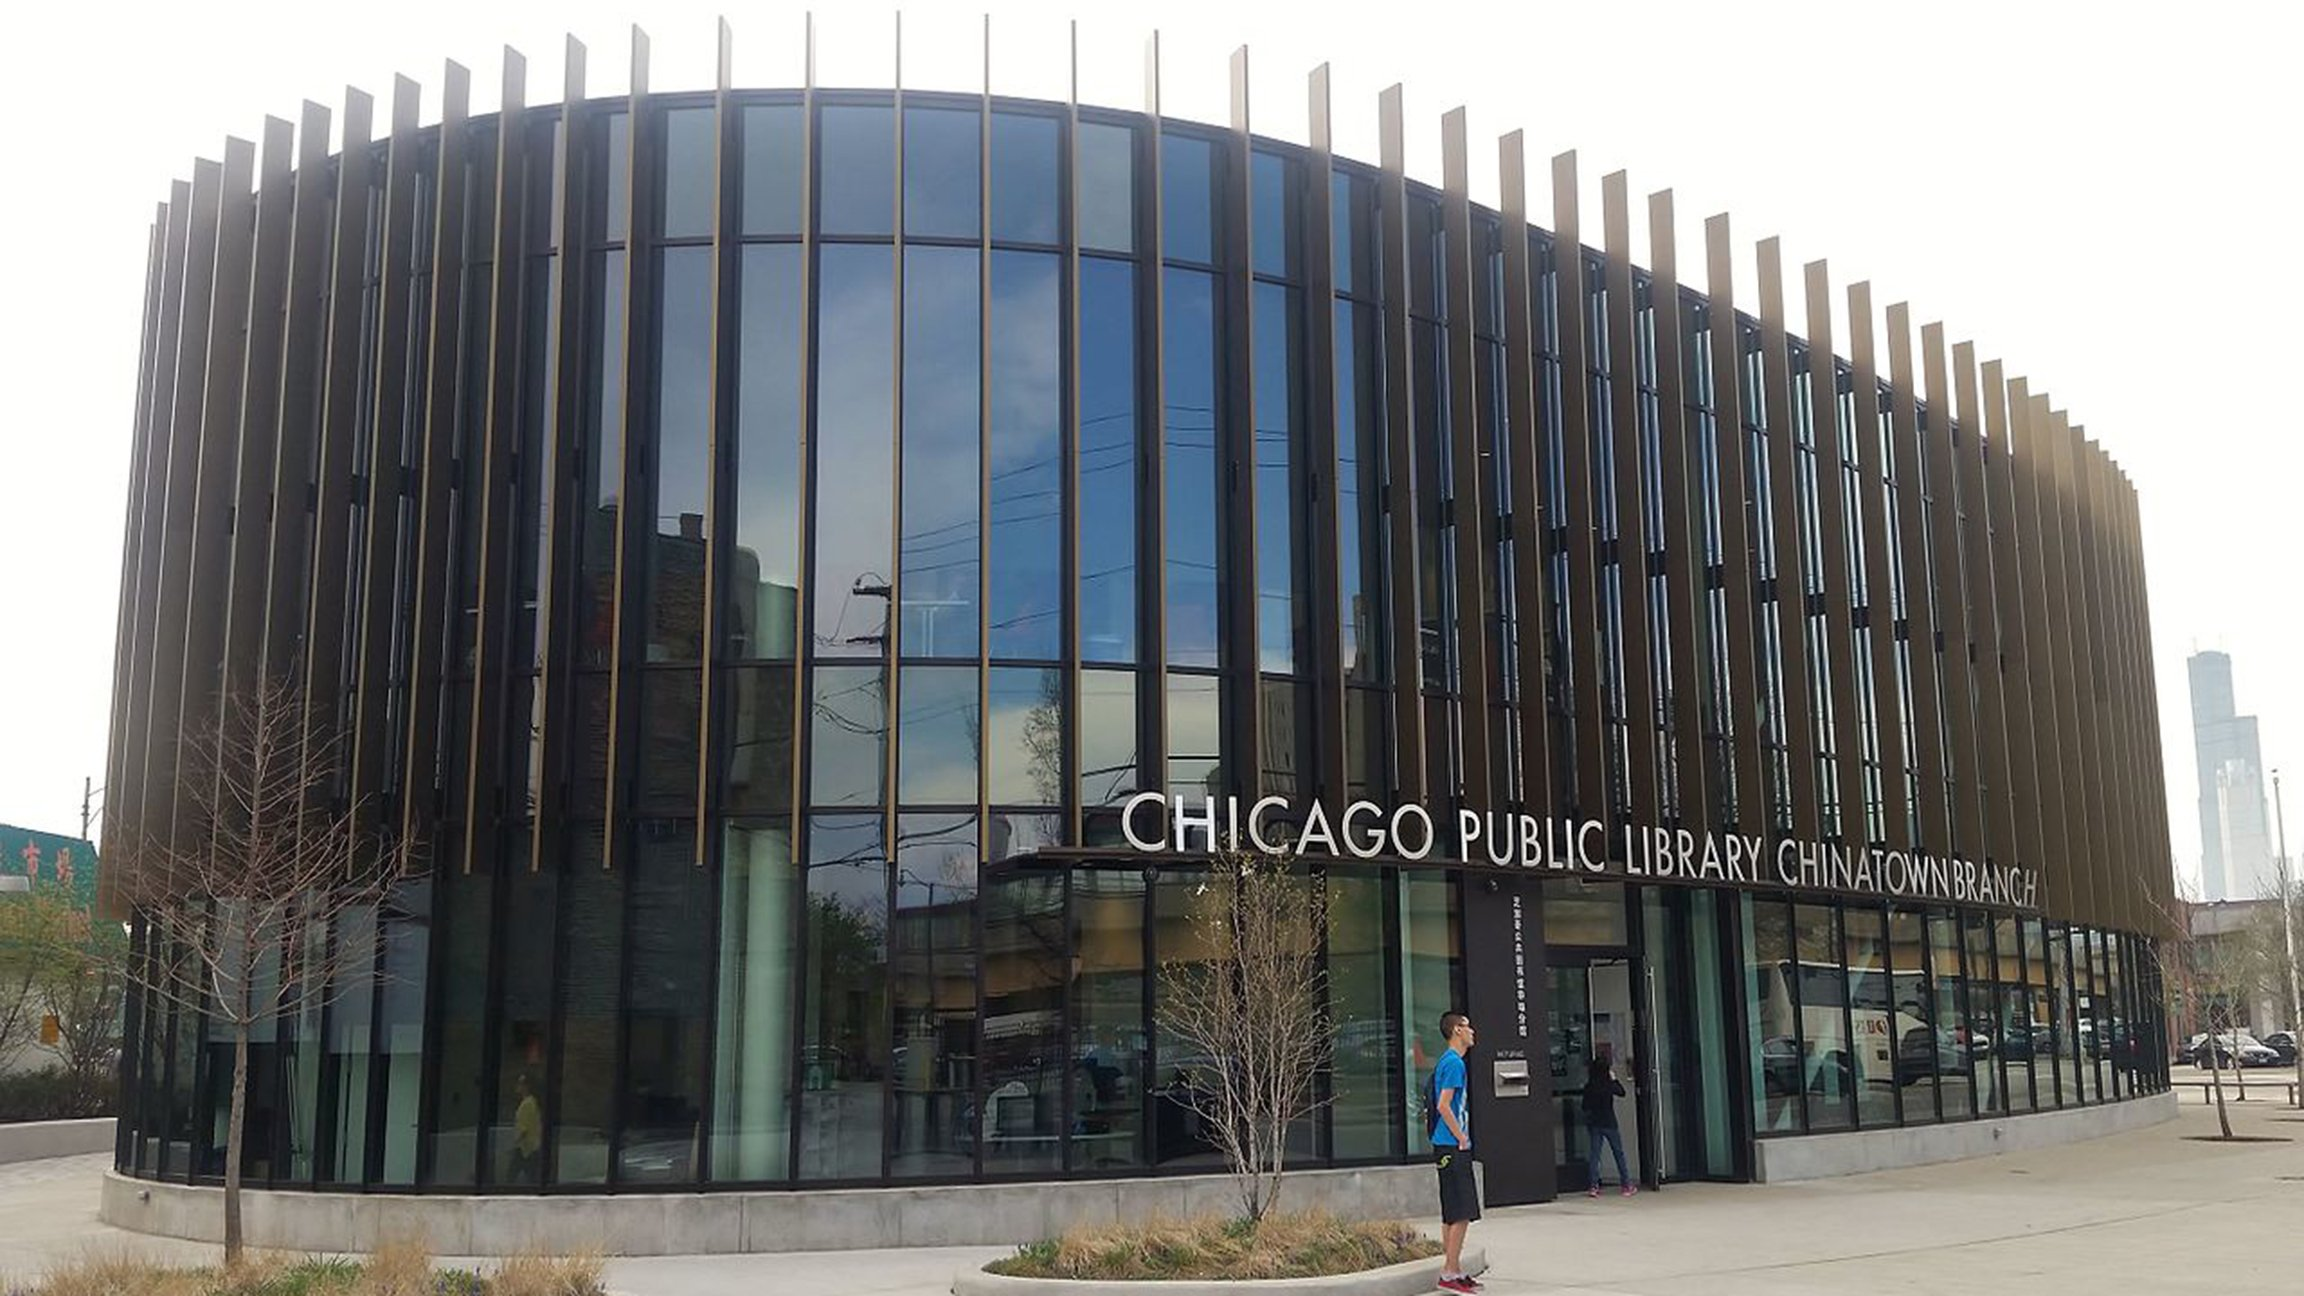 New Mixed Use Development Plan To Combine Libraries With Housing